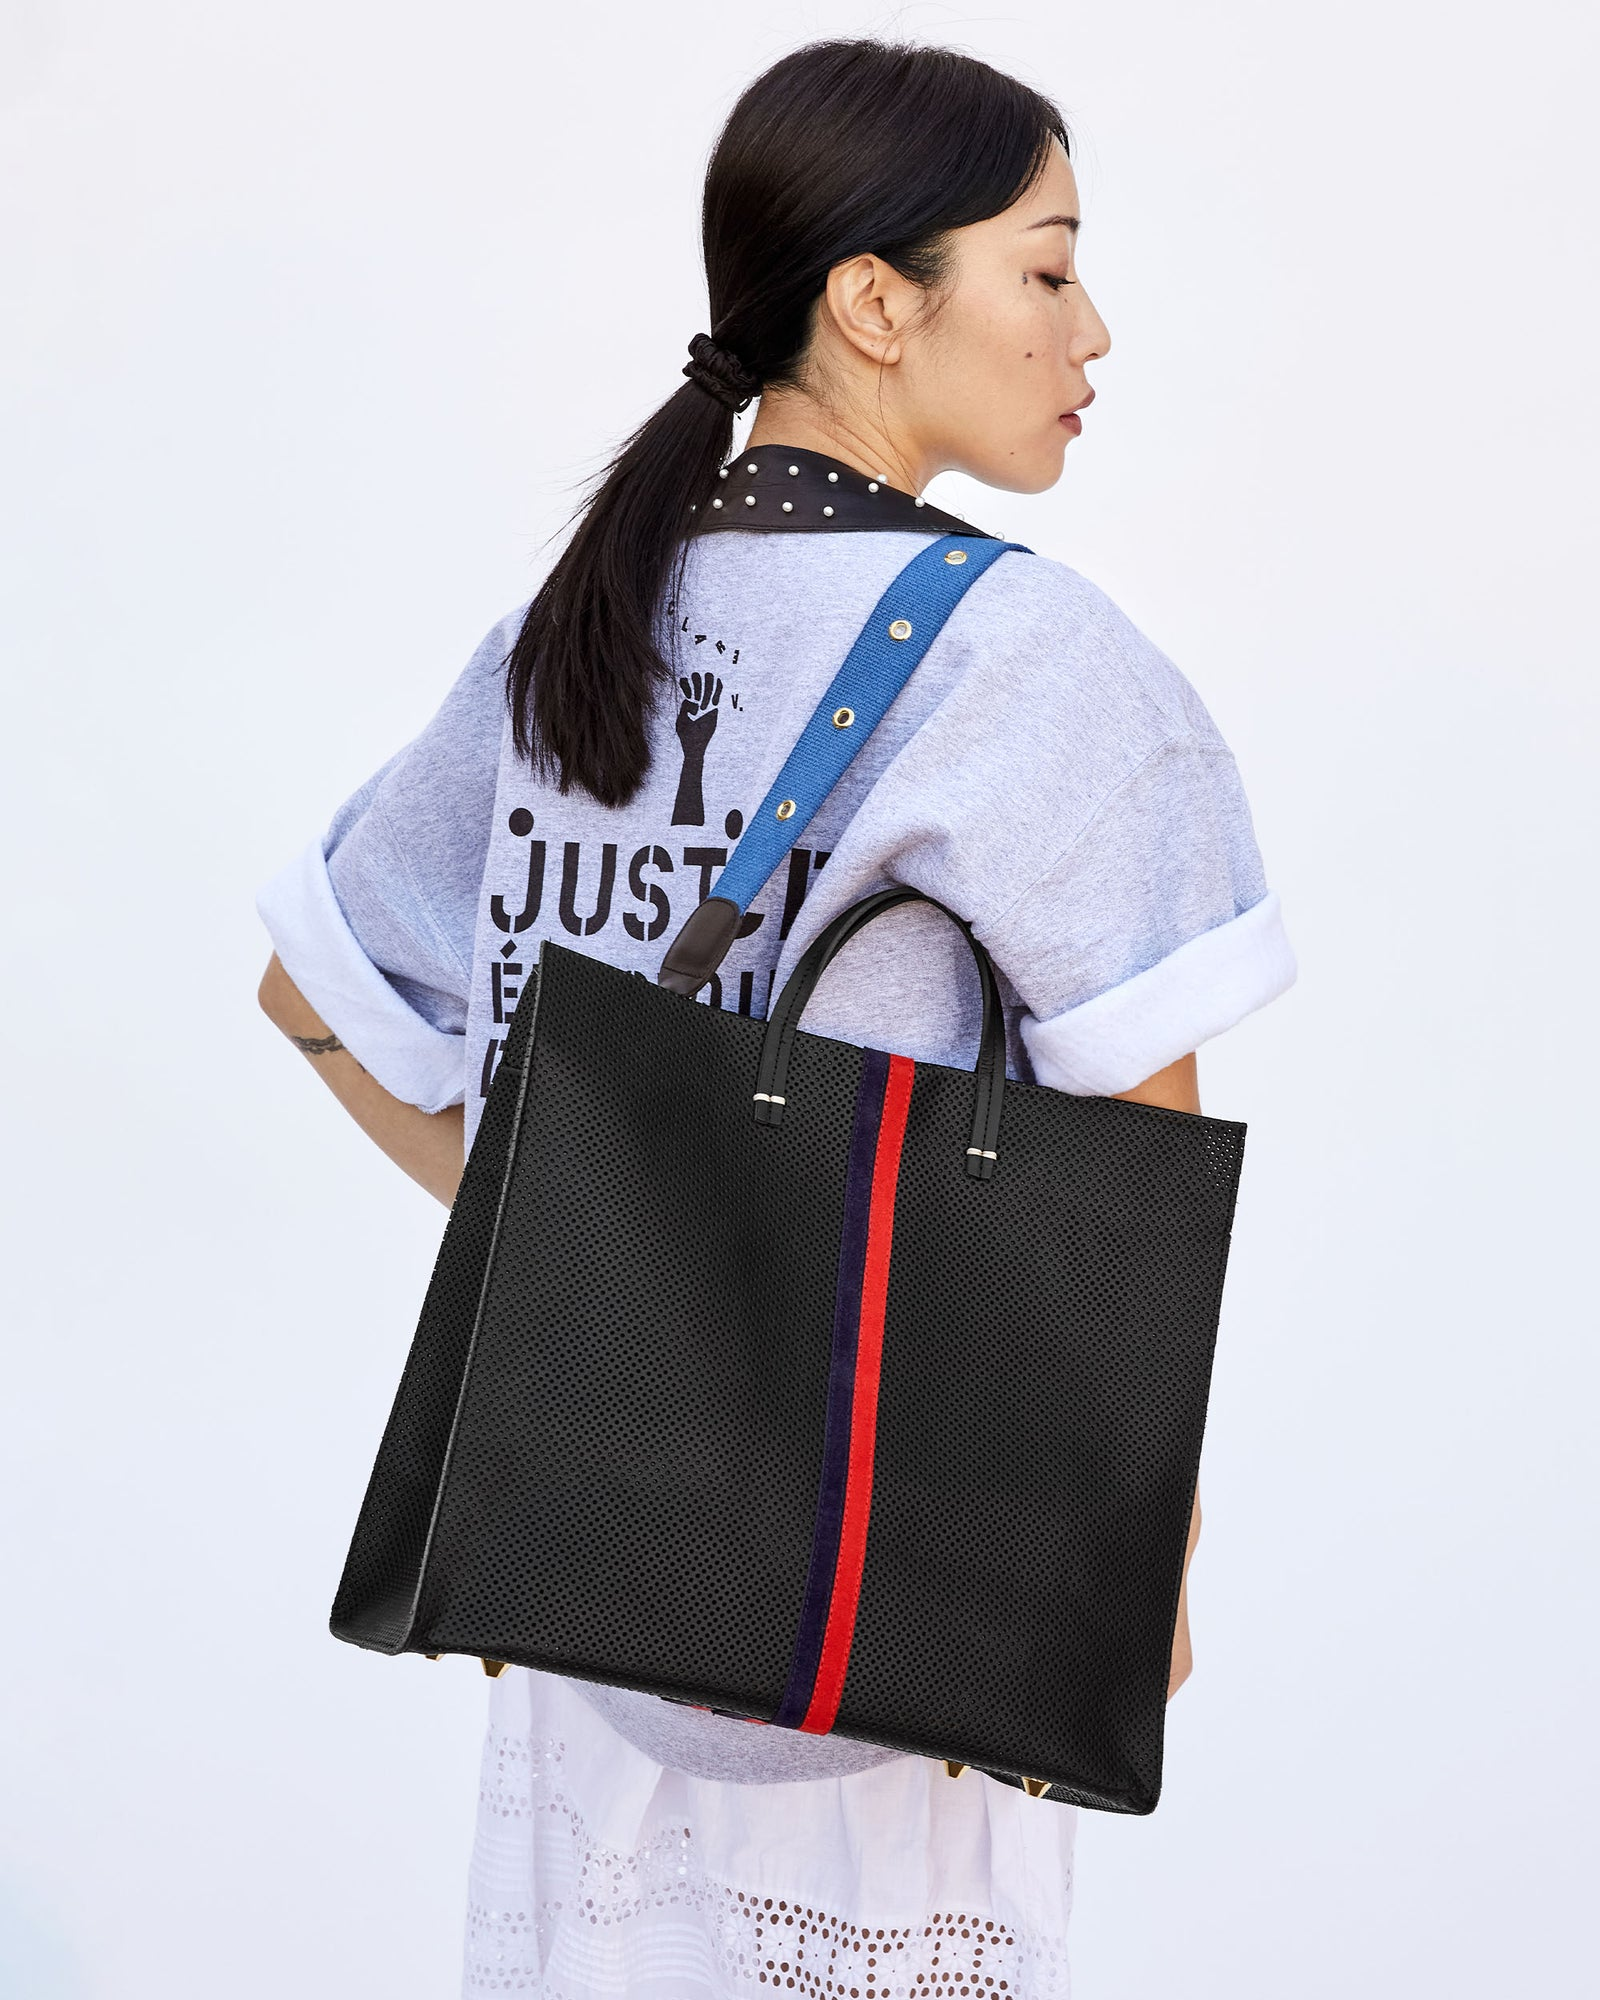 Black Perf with Navy & Red Desert Stripes Simple Tote with Blue w/ Grommets Shoulder Strap on Ami